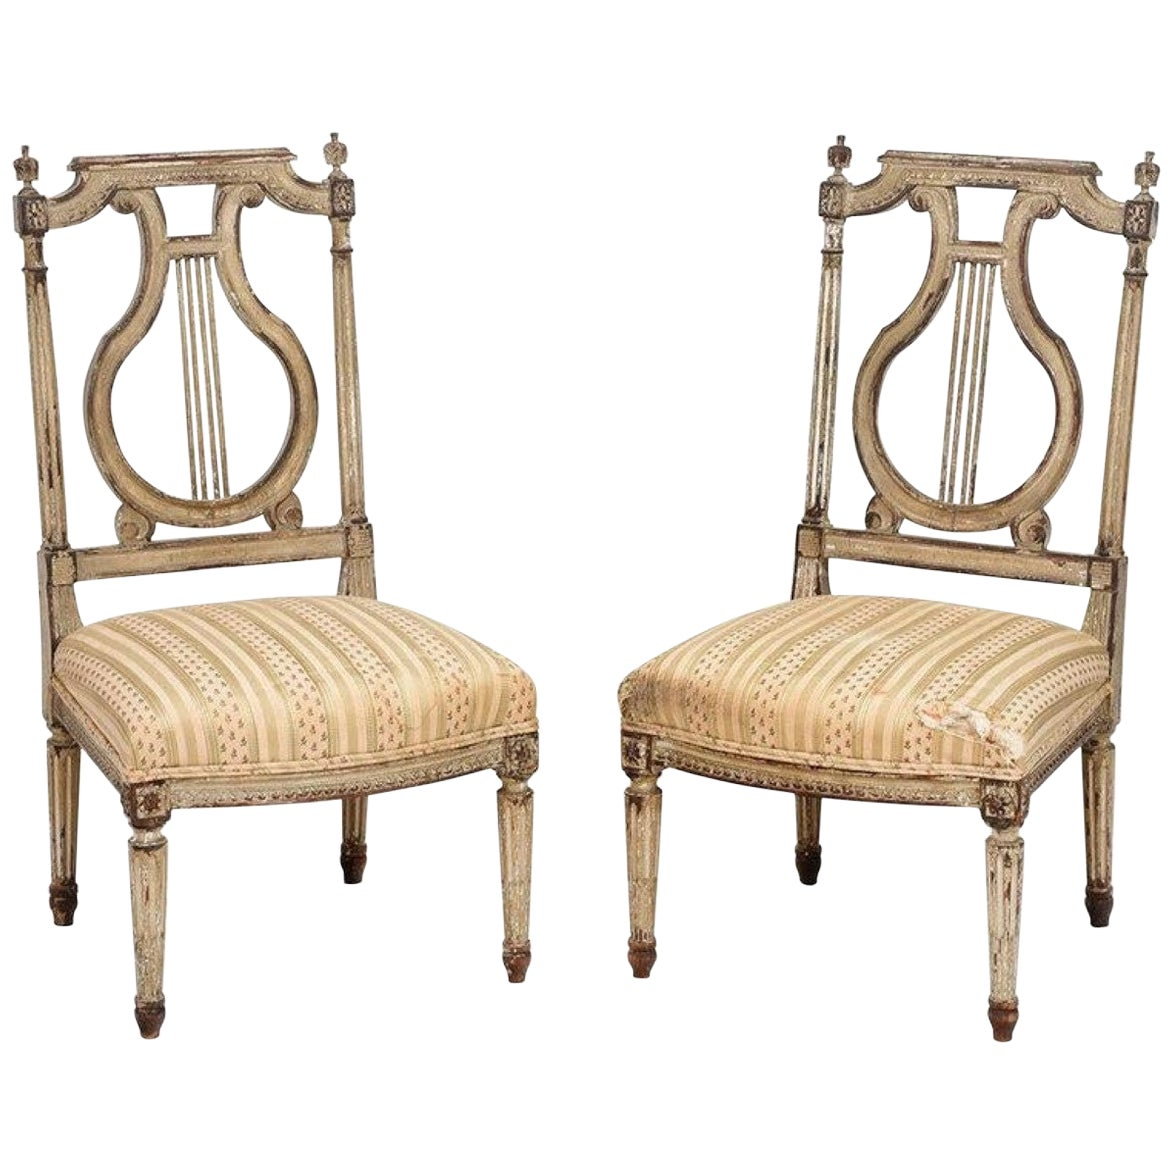 """Pair of 18th Century French """"Chauffeuse"""" Chairs, Georges Jacob Attributed"""